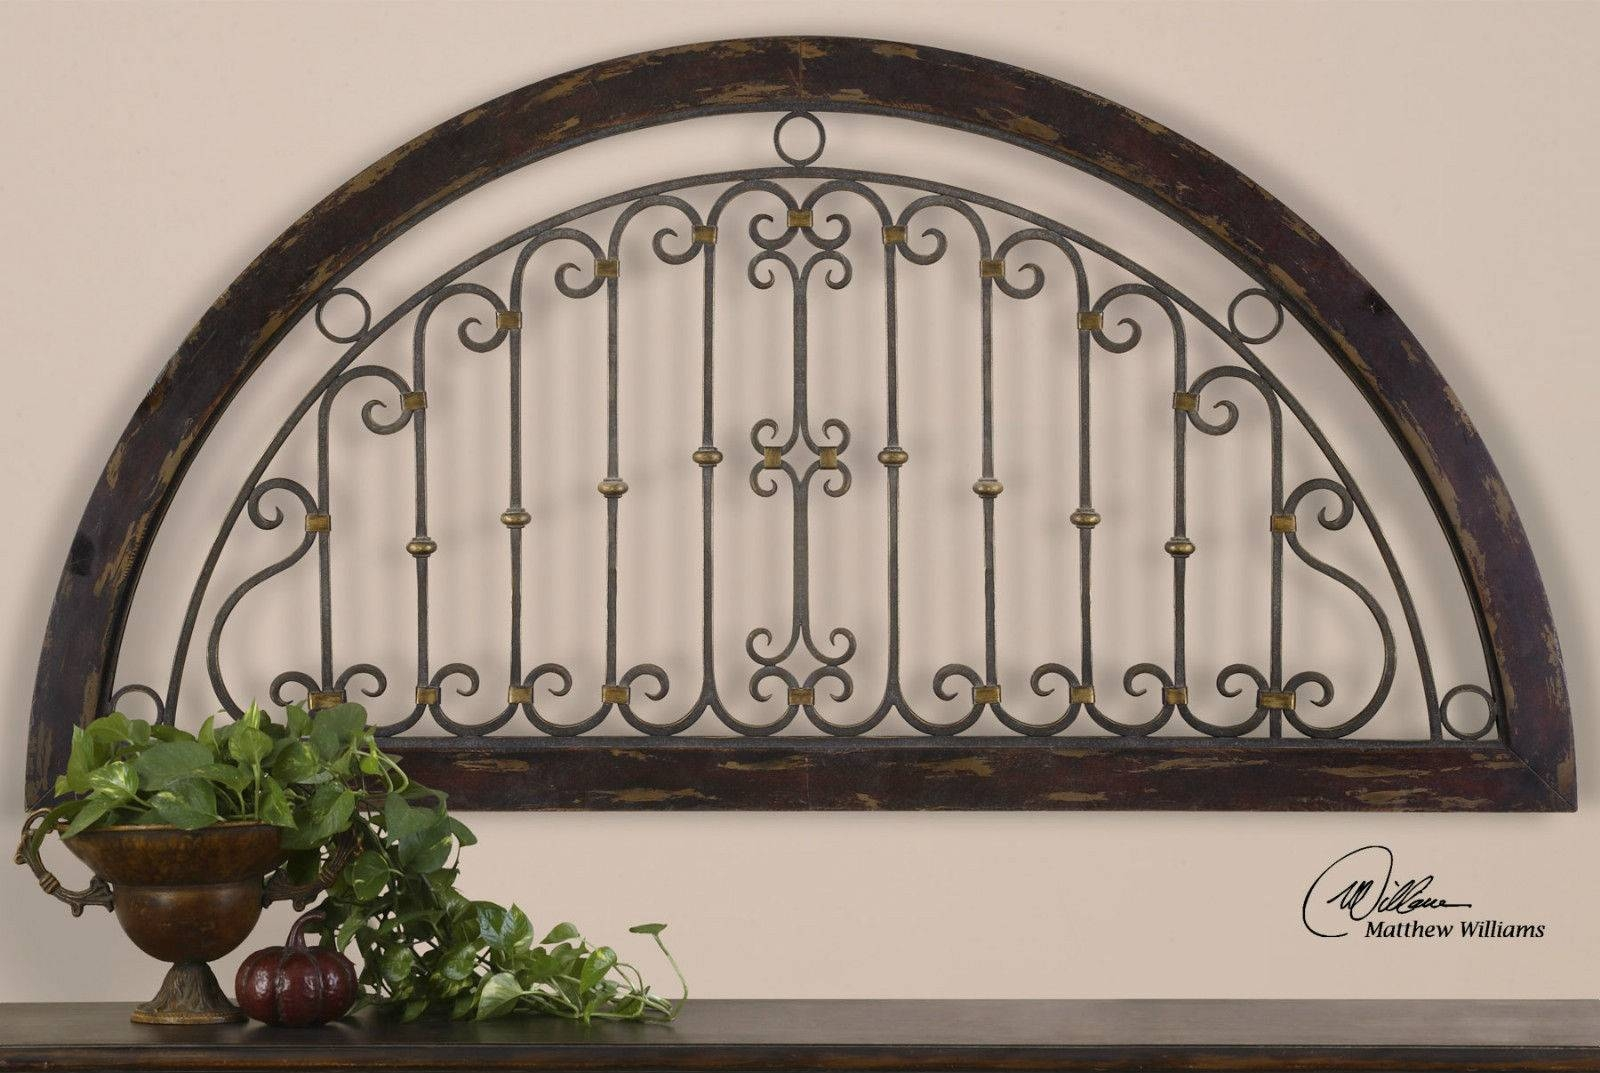 Rustic Metal Wall Decor With Regard To Most Up To Date Rustic Metal Wall Art (Gallery 20 of 20)